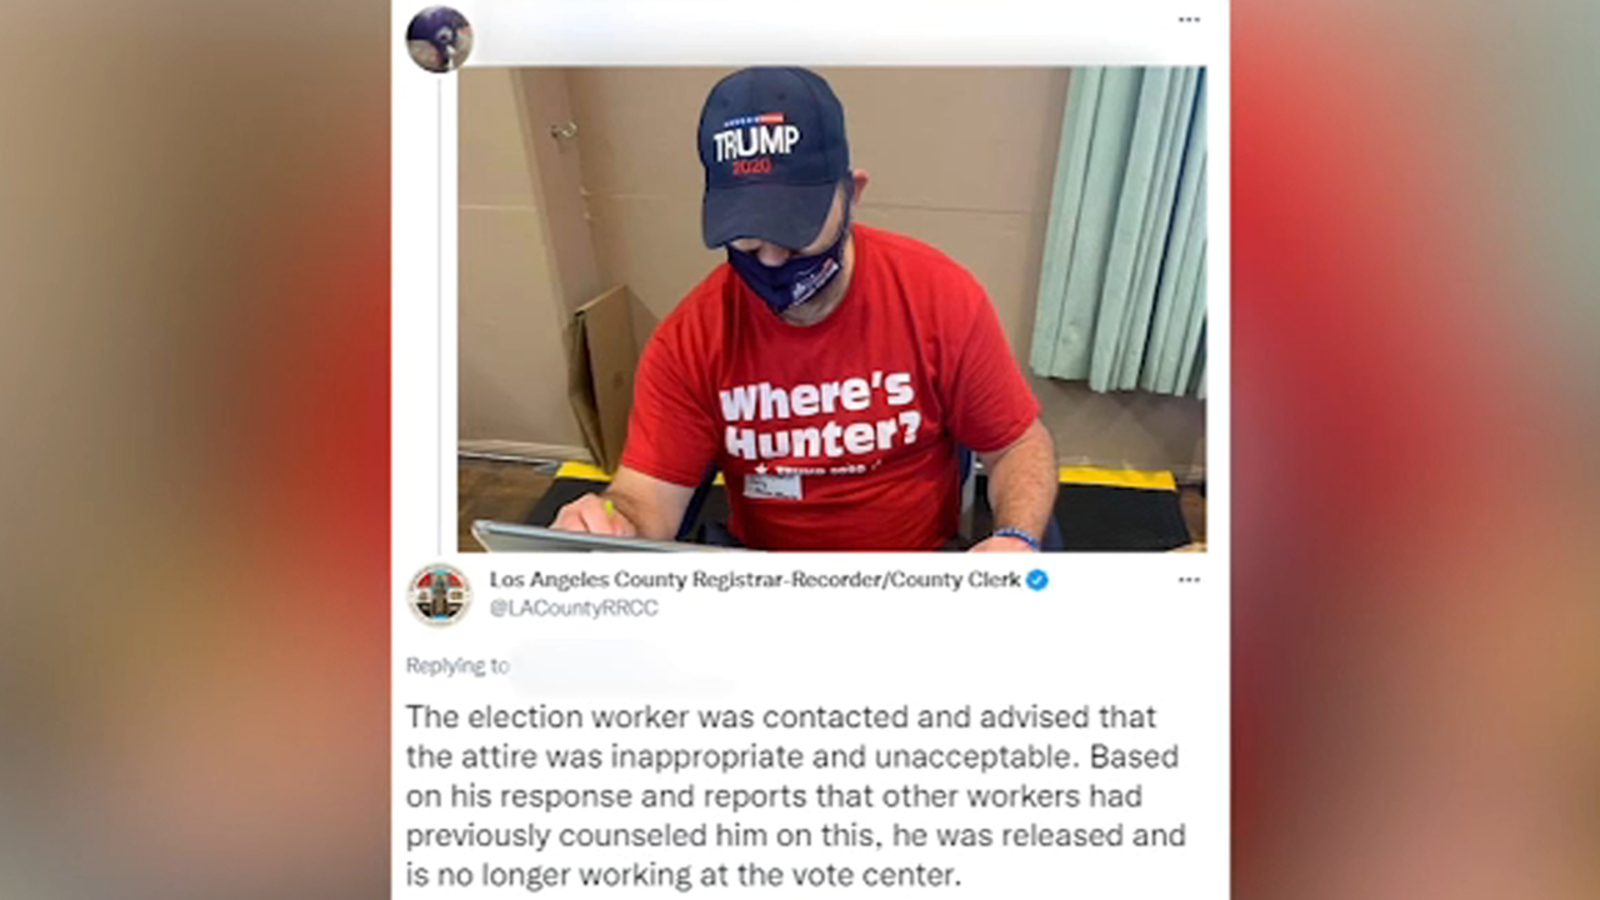 West Hollywood poll worker removed for wearing pro-Trump clothing at voting site - KABC-TV